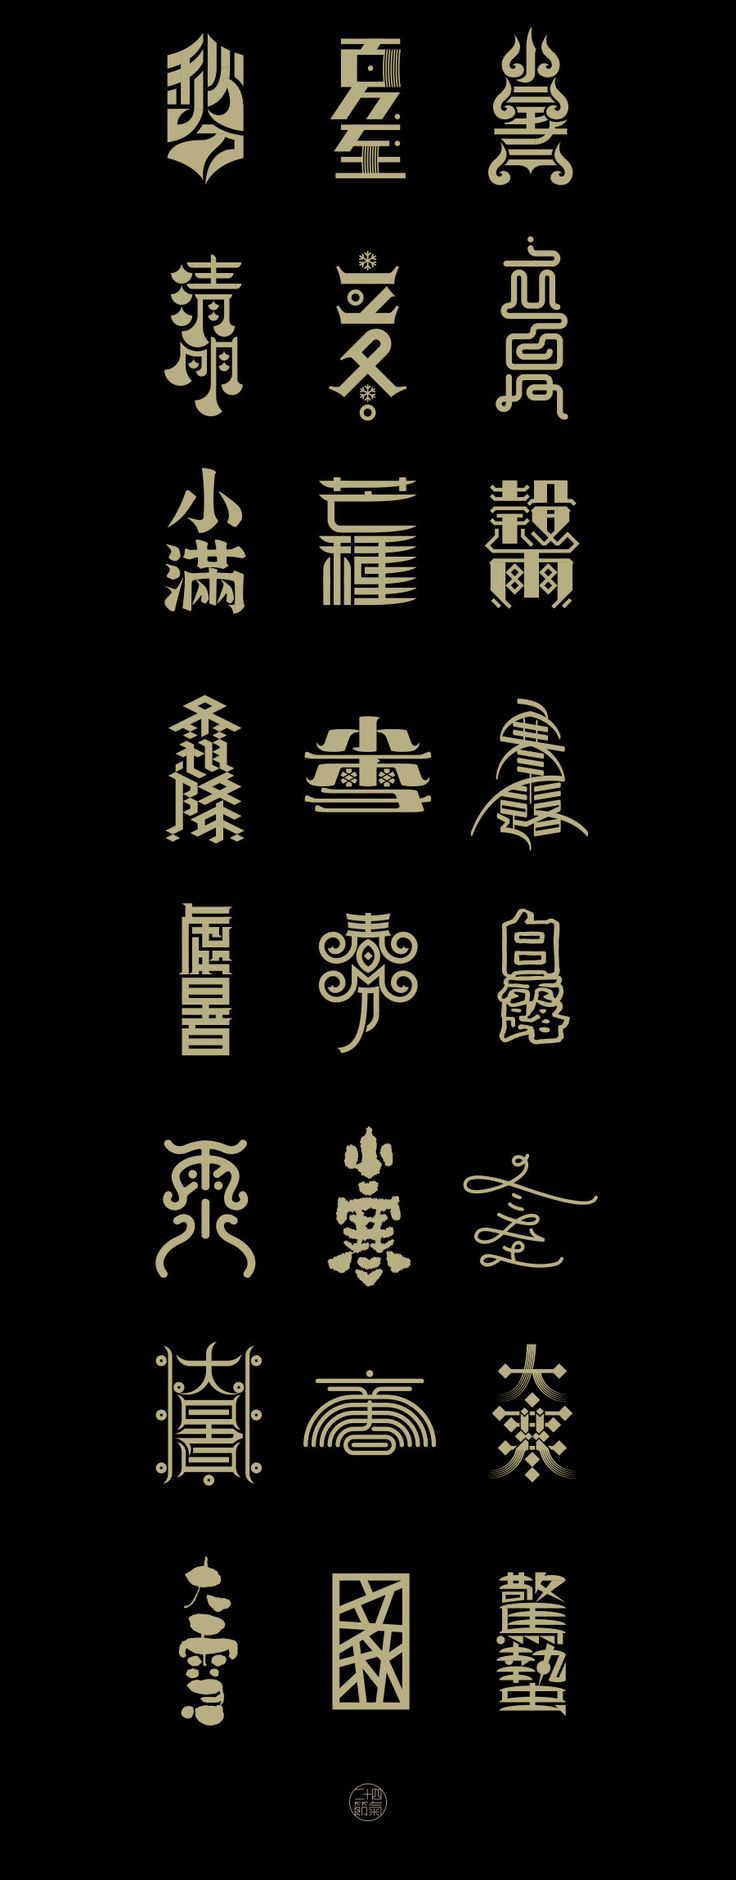 "《二十四节气》-天宇版》The 24 Solar Terms of China or 24 Seasonal Division Points. ""A solar term is any of 24 points in traditional East Asian lunisolar calendars that matches a particular astronomical event or signifies some natural phenomenon. The points are spaced 15° apart along the ecliptic and are used by lunisolar calendars to stay synchronized with the seasons, which is crucial for agrarian societies.""- From Wikipedia entry on 'solar term.'"